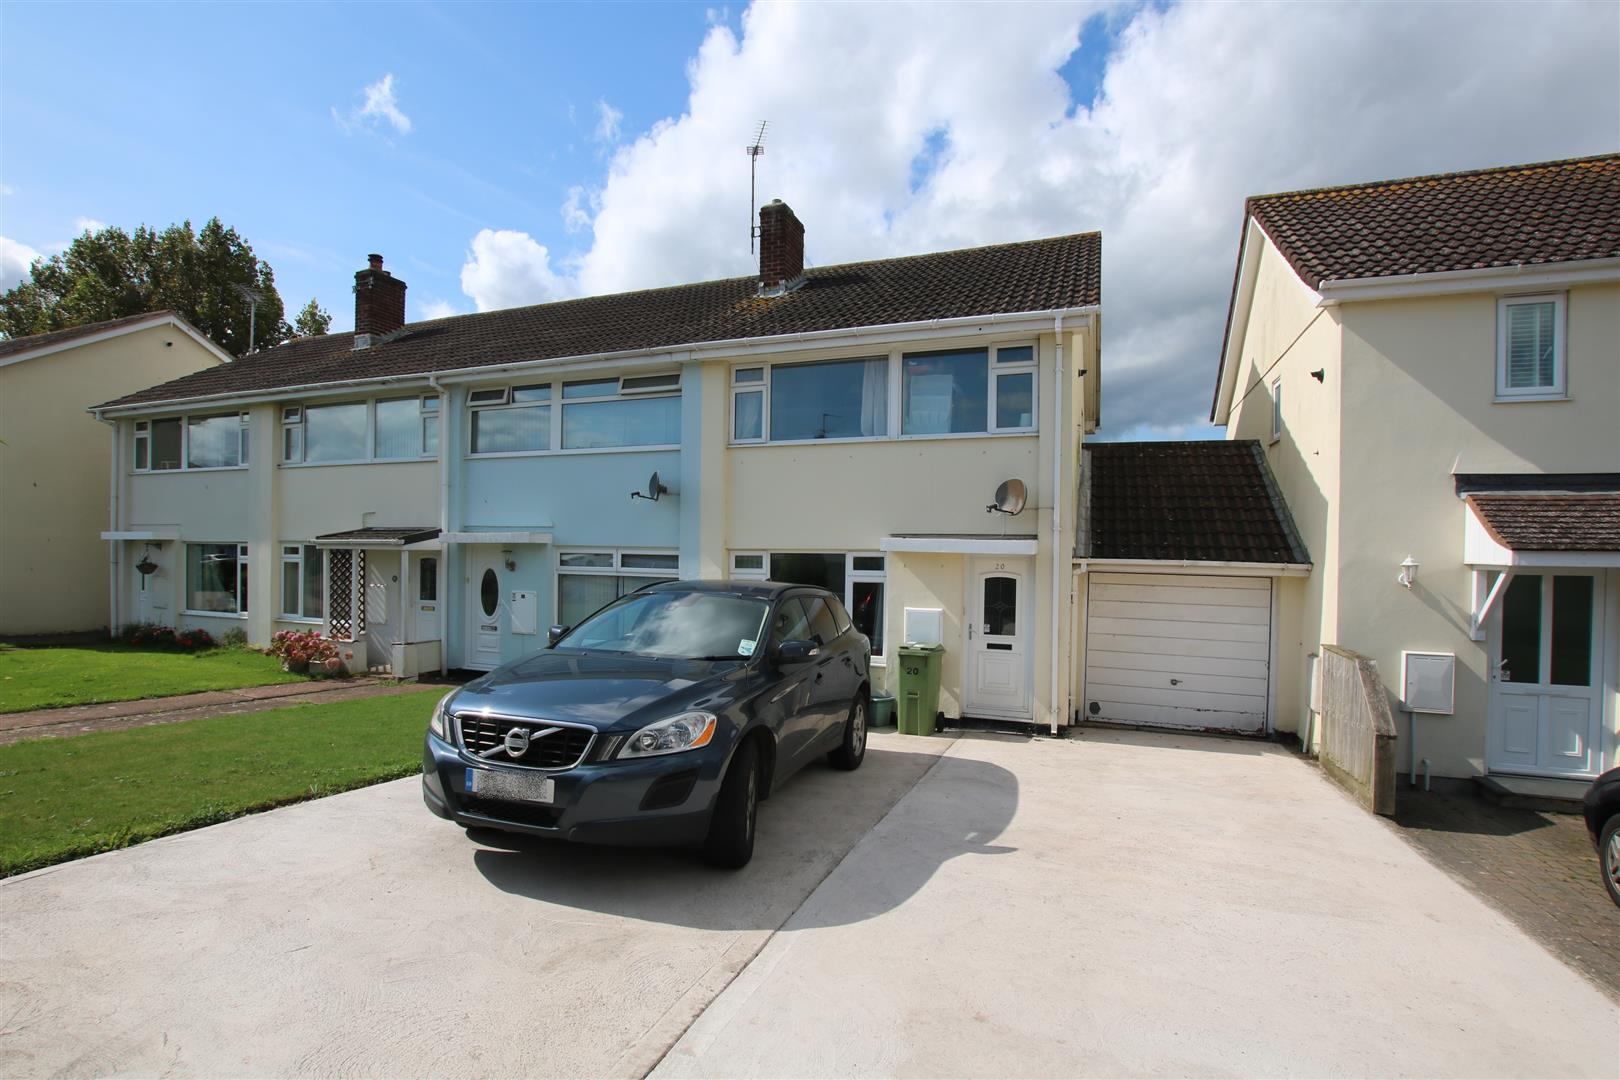 3 Bedrooms End Of Terrace House for sale in Parkers Road, Starcross, Exeter